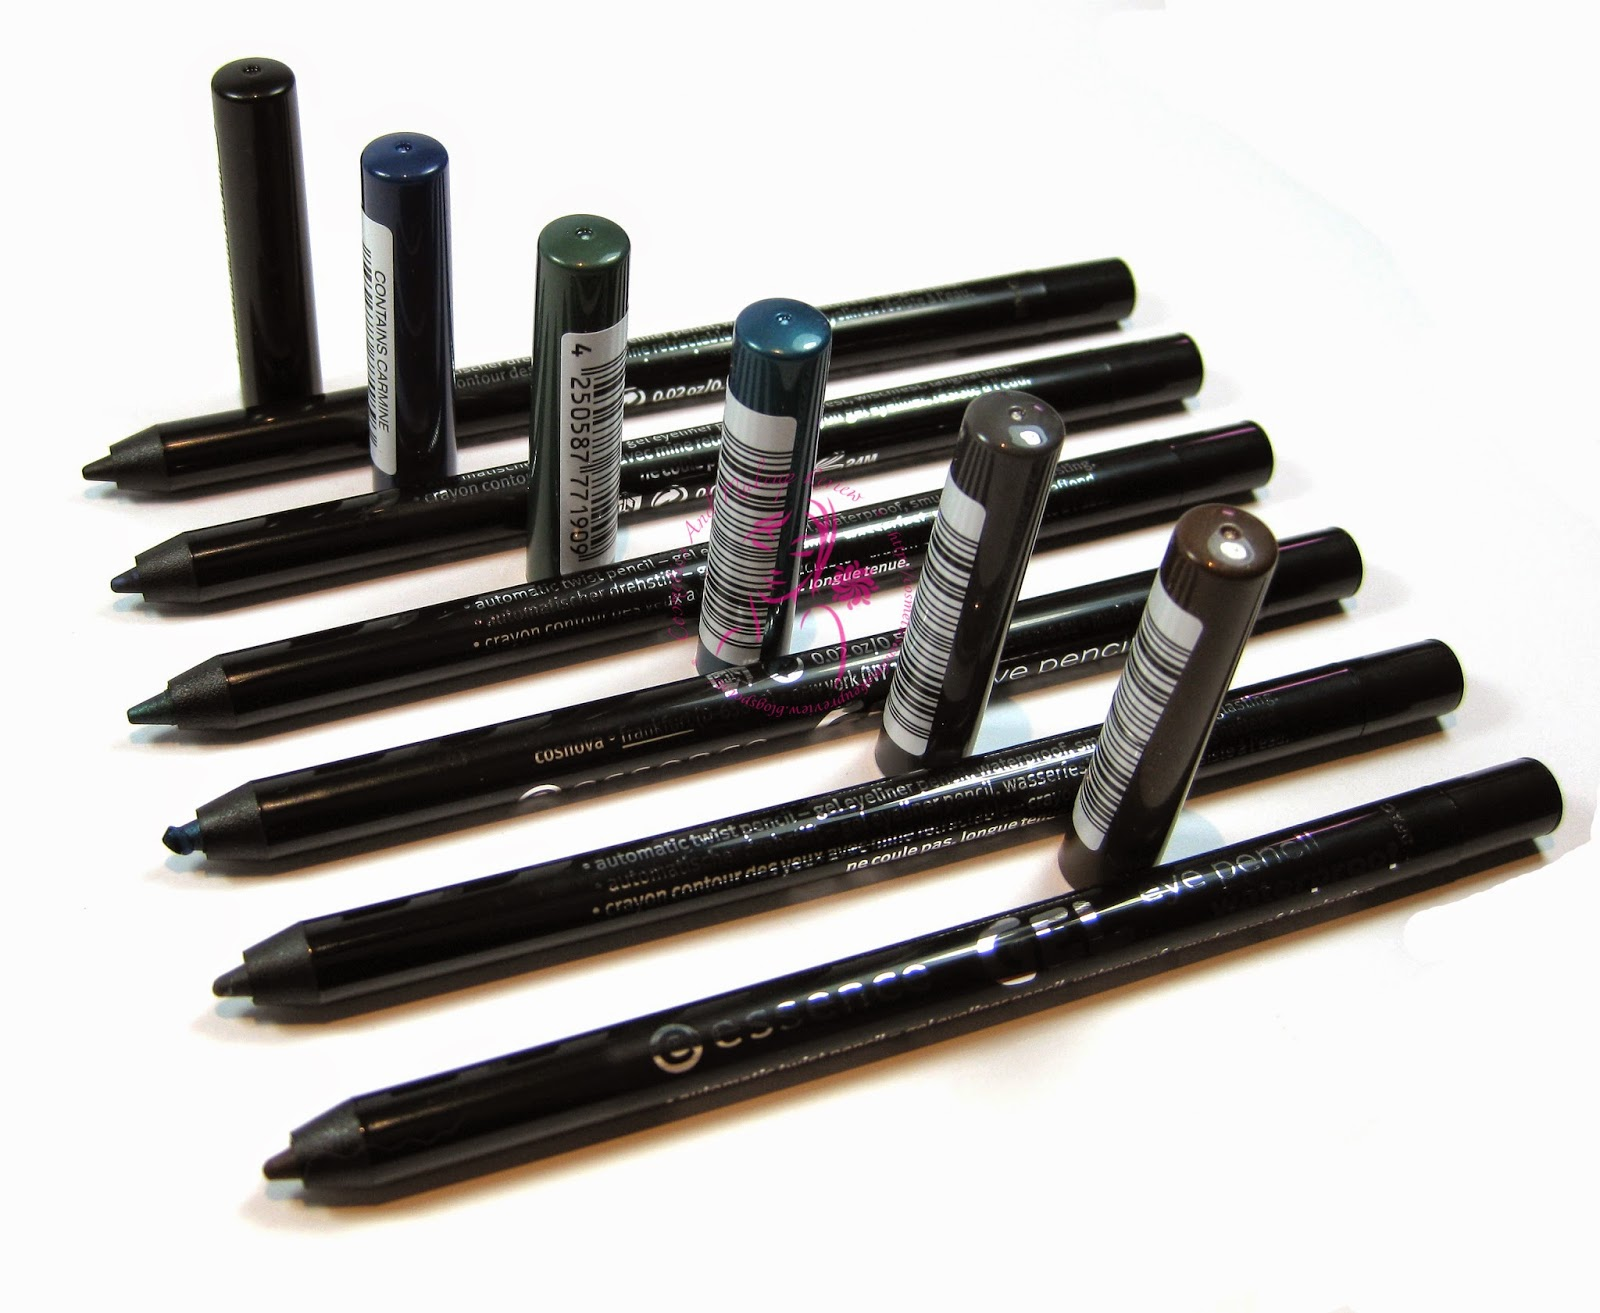 Essence - Gel Eye Pencil Waterproof n° 01, 02, 03, 04, 05, 06